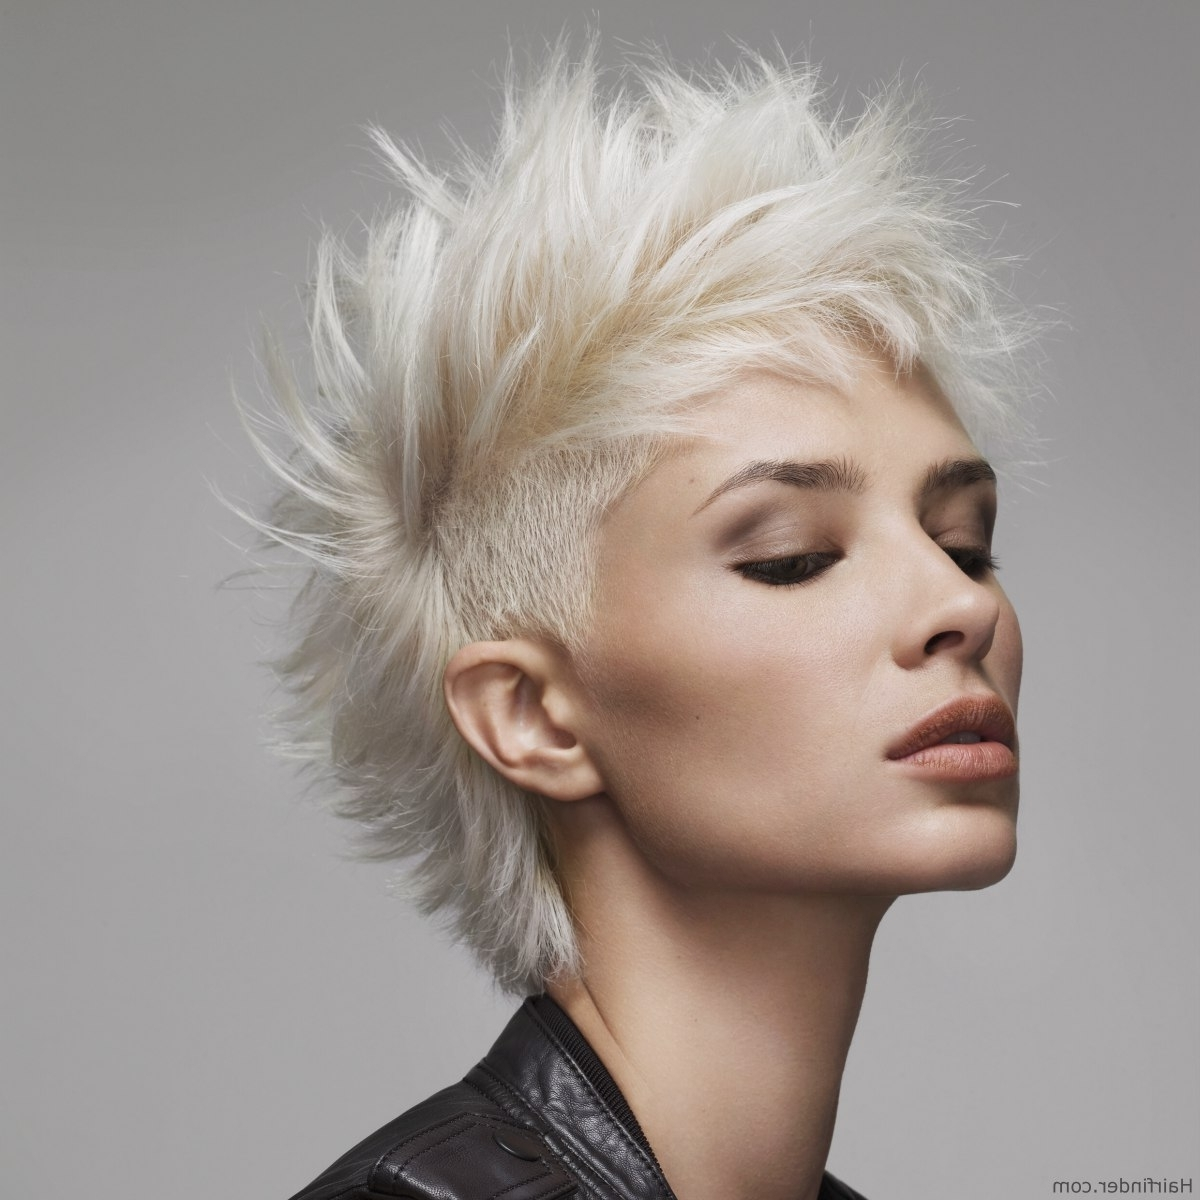 Short And Spiky Platinum Blonde Hair With An Undercut Throughout Well Known Spiked Blonde Mohawk Hairstyles (View 16 of 20)